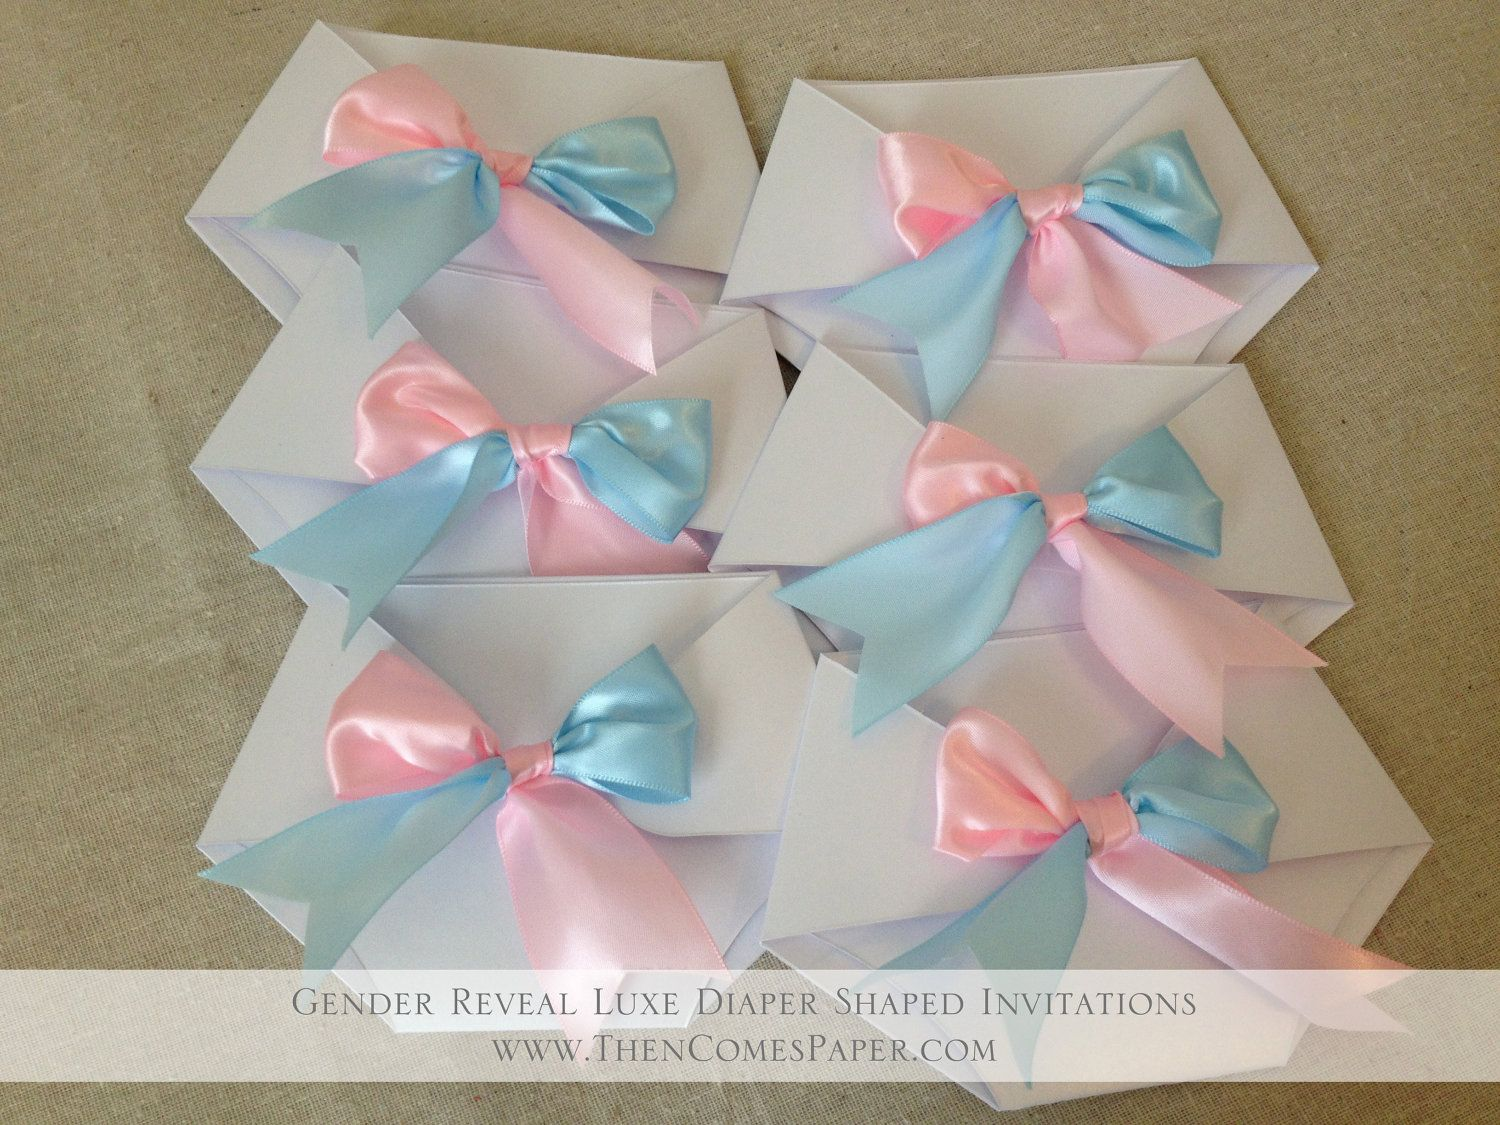 Gender Reveal Baby Shower Invitation Pink and Blue Diaper Shaped